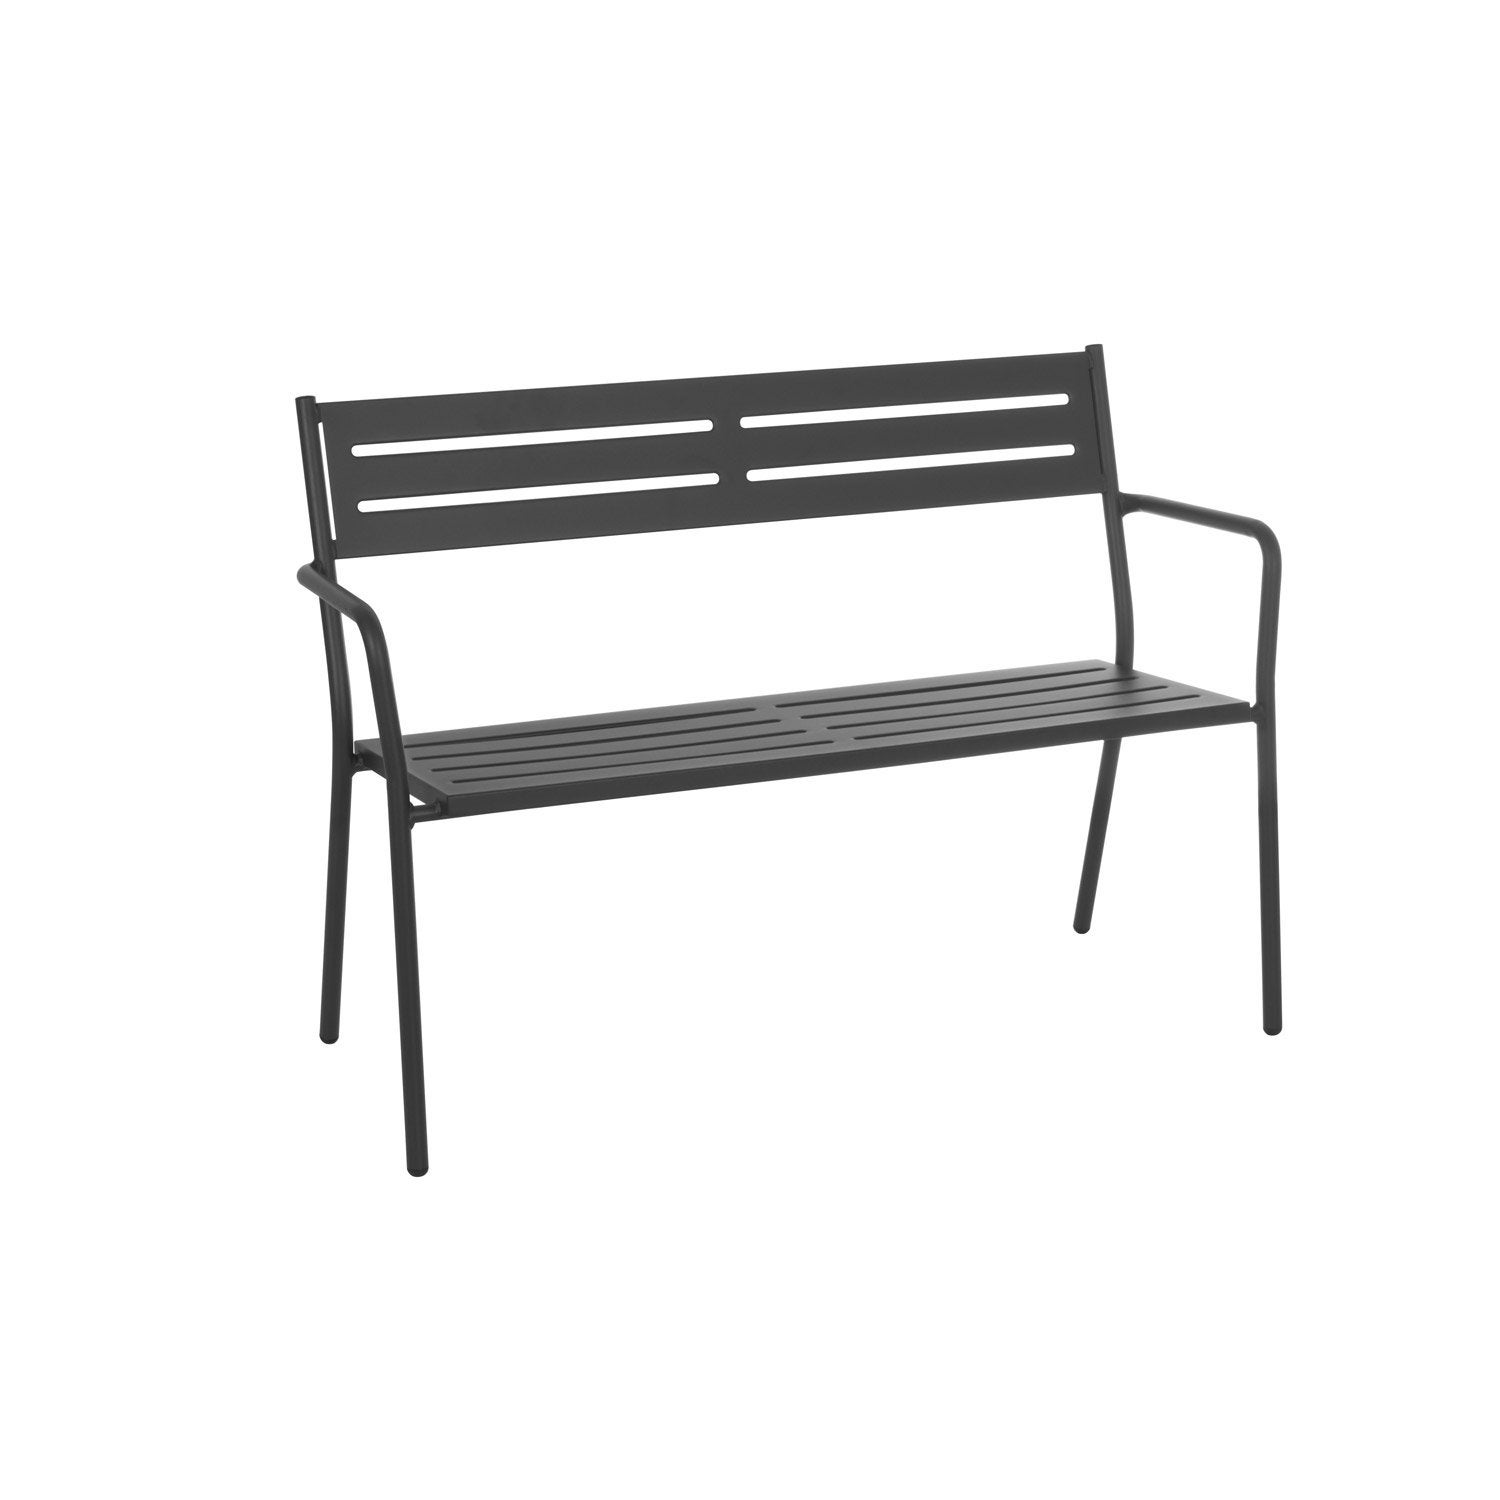 banc 2 places de jardin en acier trevi fer ancien leroy. Black Bedroom Furniture Sets. Home Design Ideas